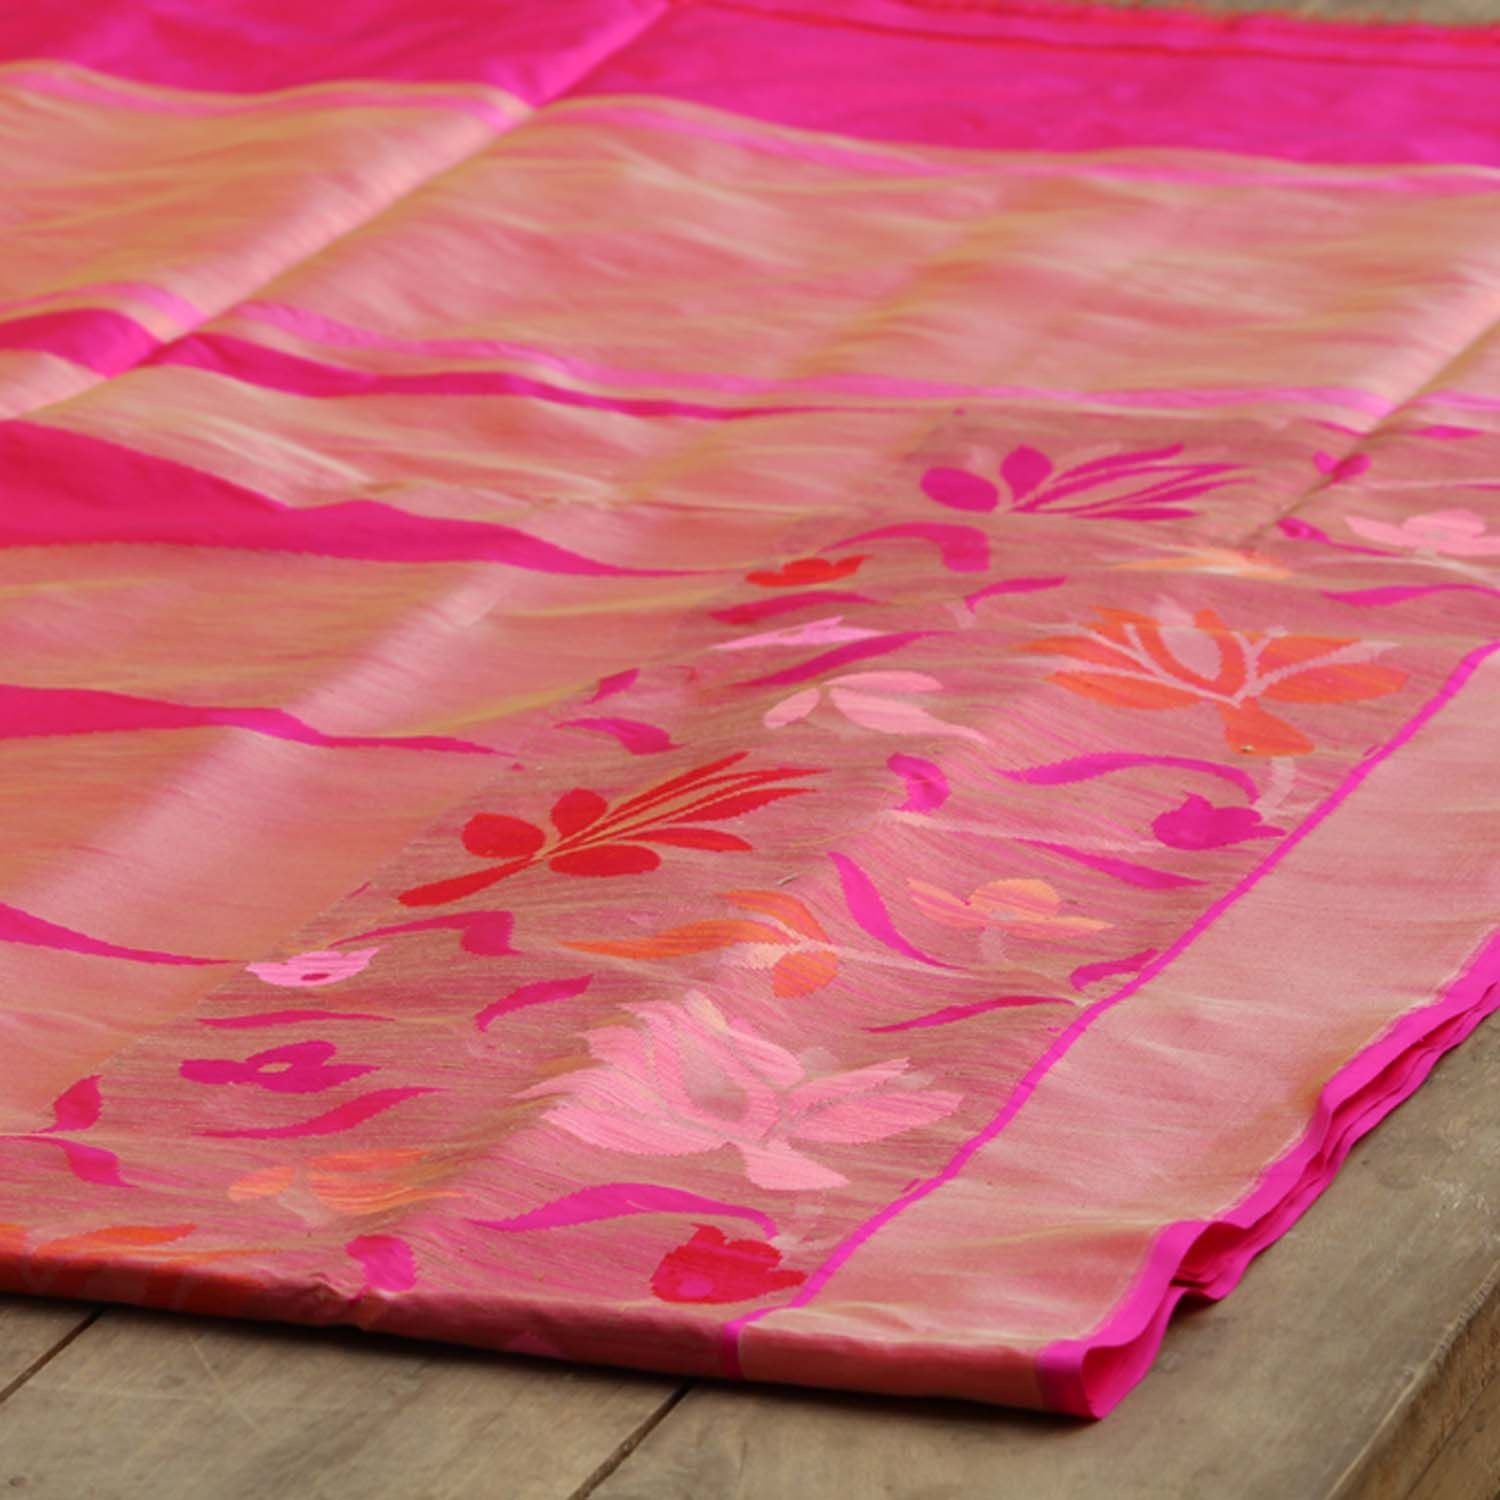 Rust-Indian Pink Shot Color Pure Katan Silk Banarasi Handloom Saree - Tilfi - 2